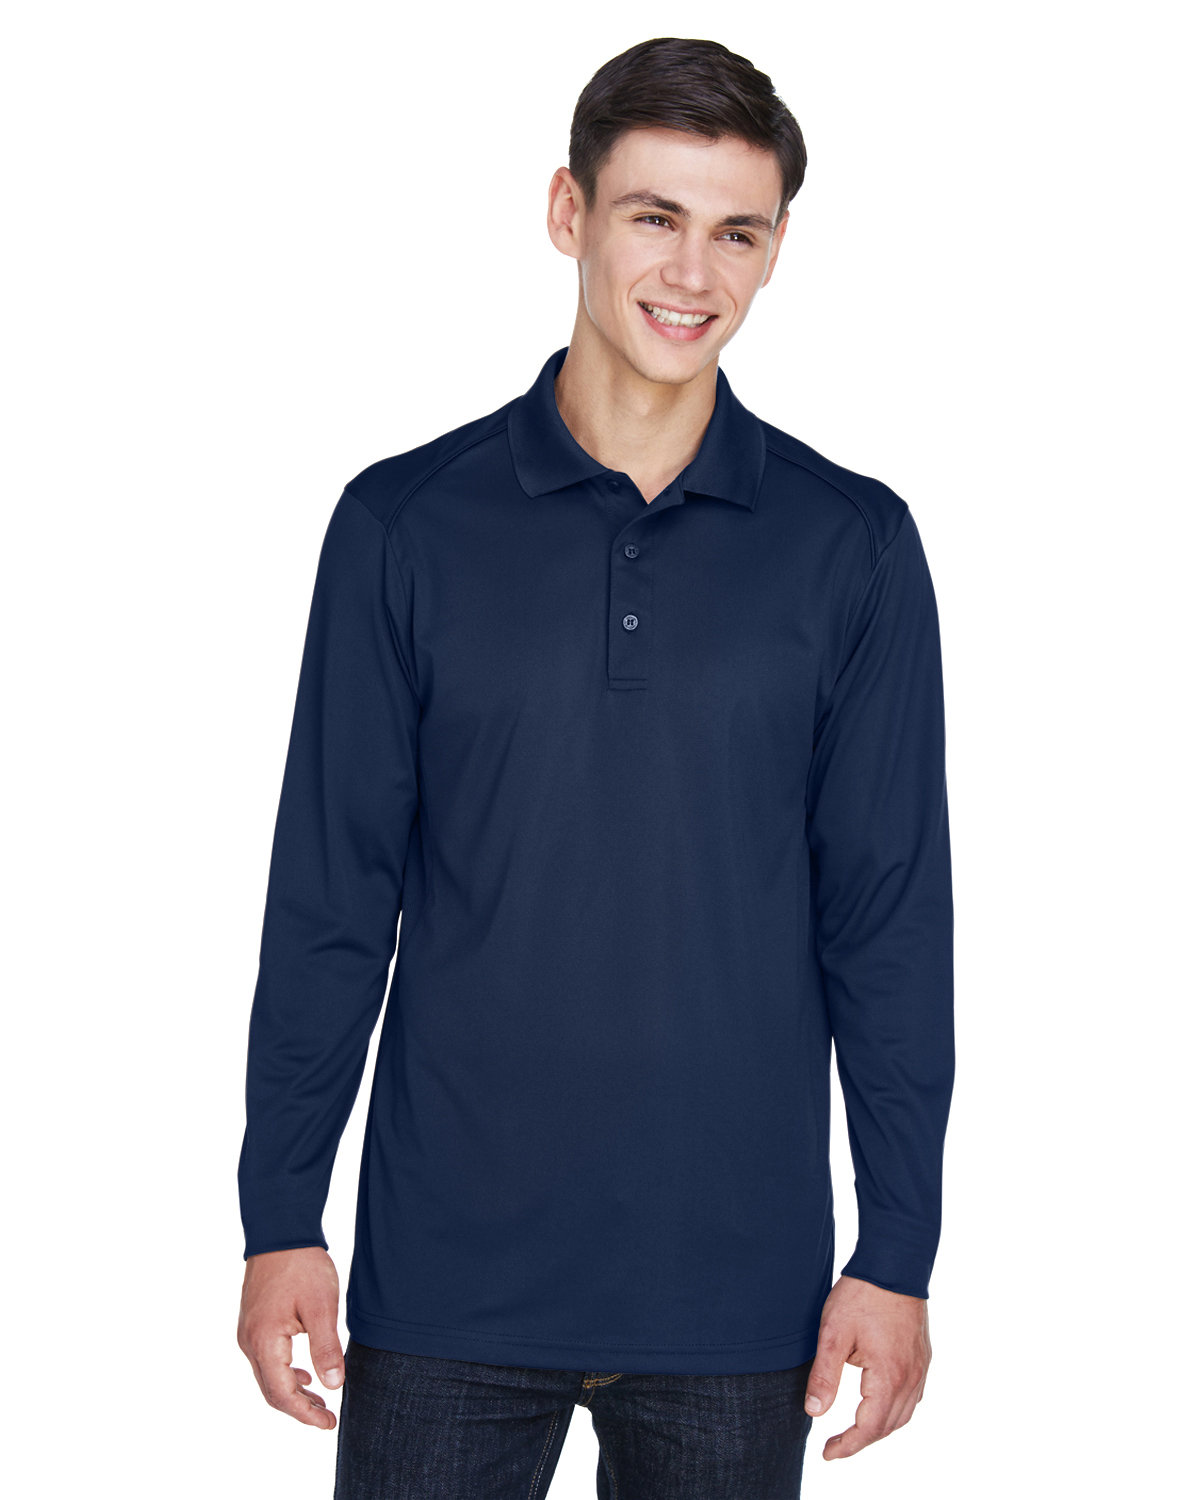 Extreme Men's Eperformance™ Snag Protection Long-Sleeve Polo CLASSIC NAVY